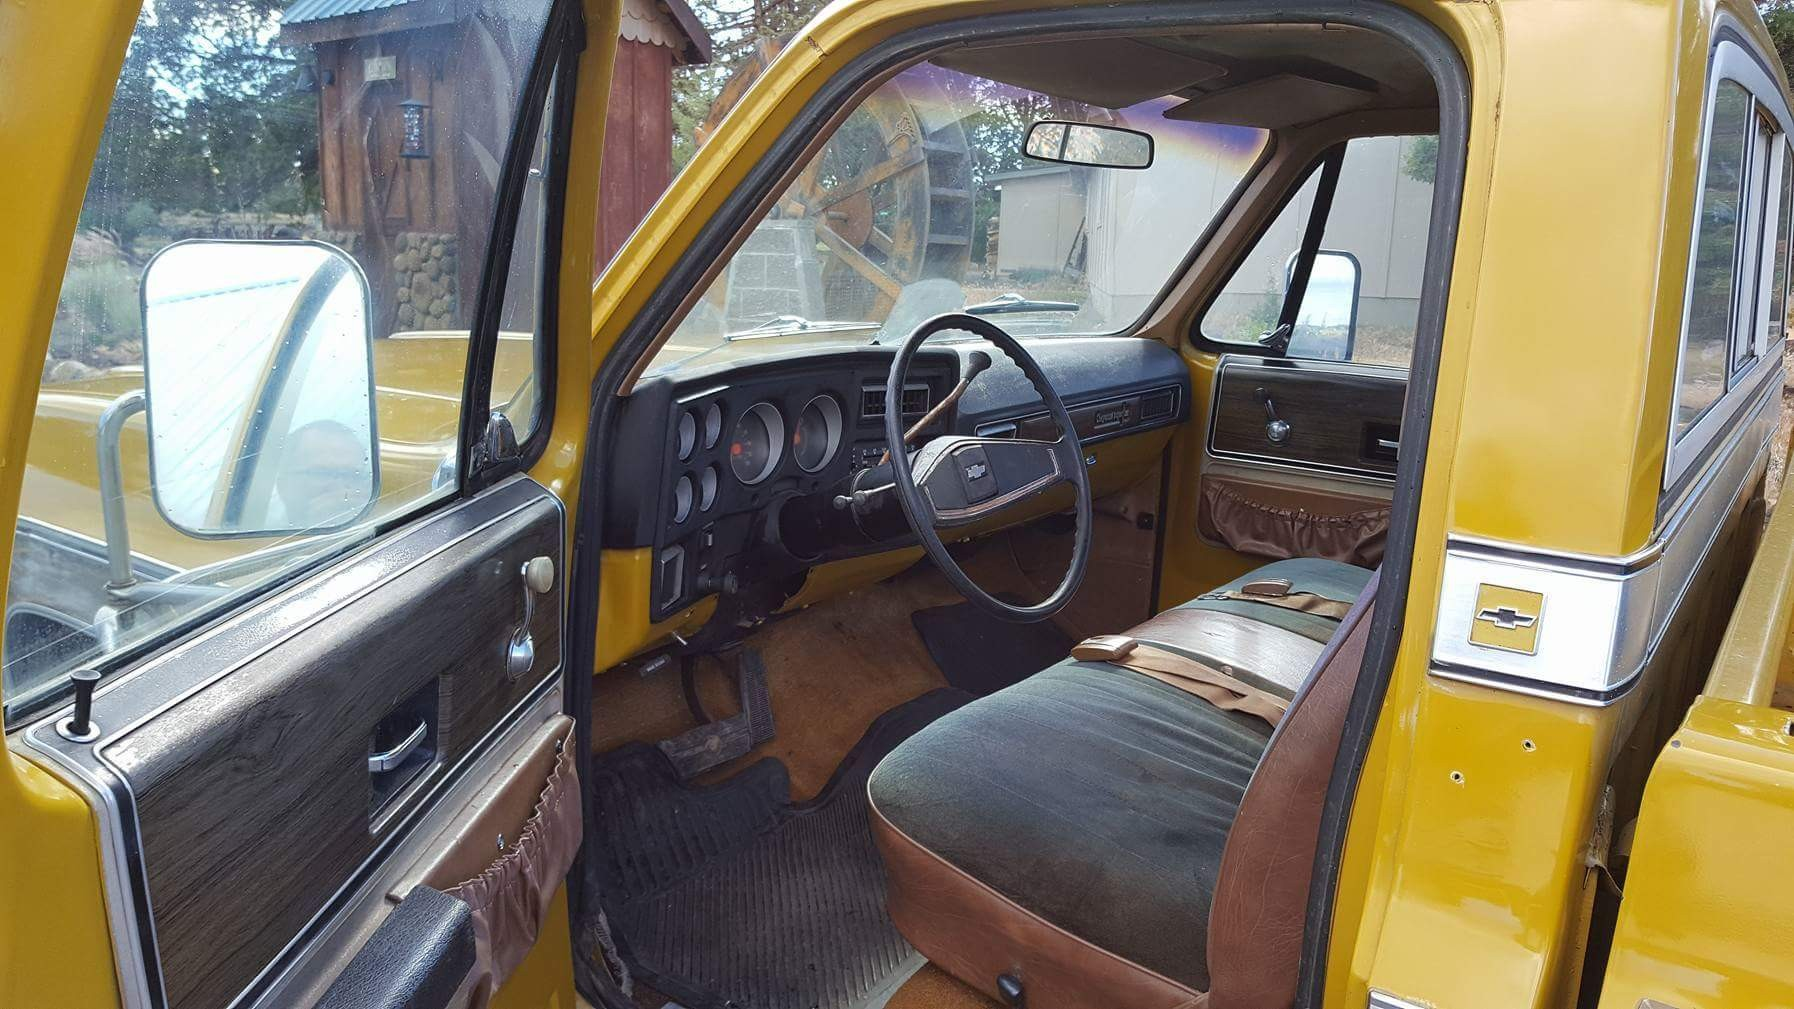 1973 Chevrolet C20 Cheyenne - 454ci - yellow (5)